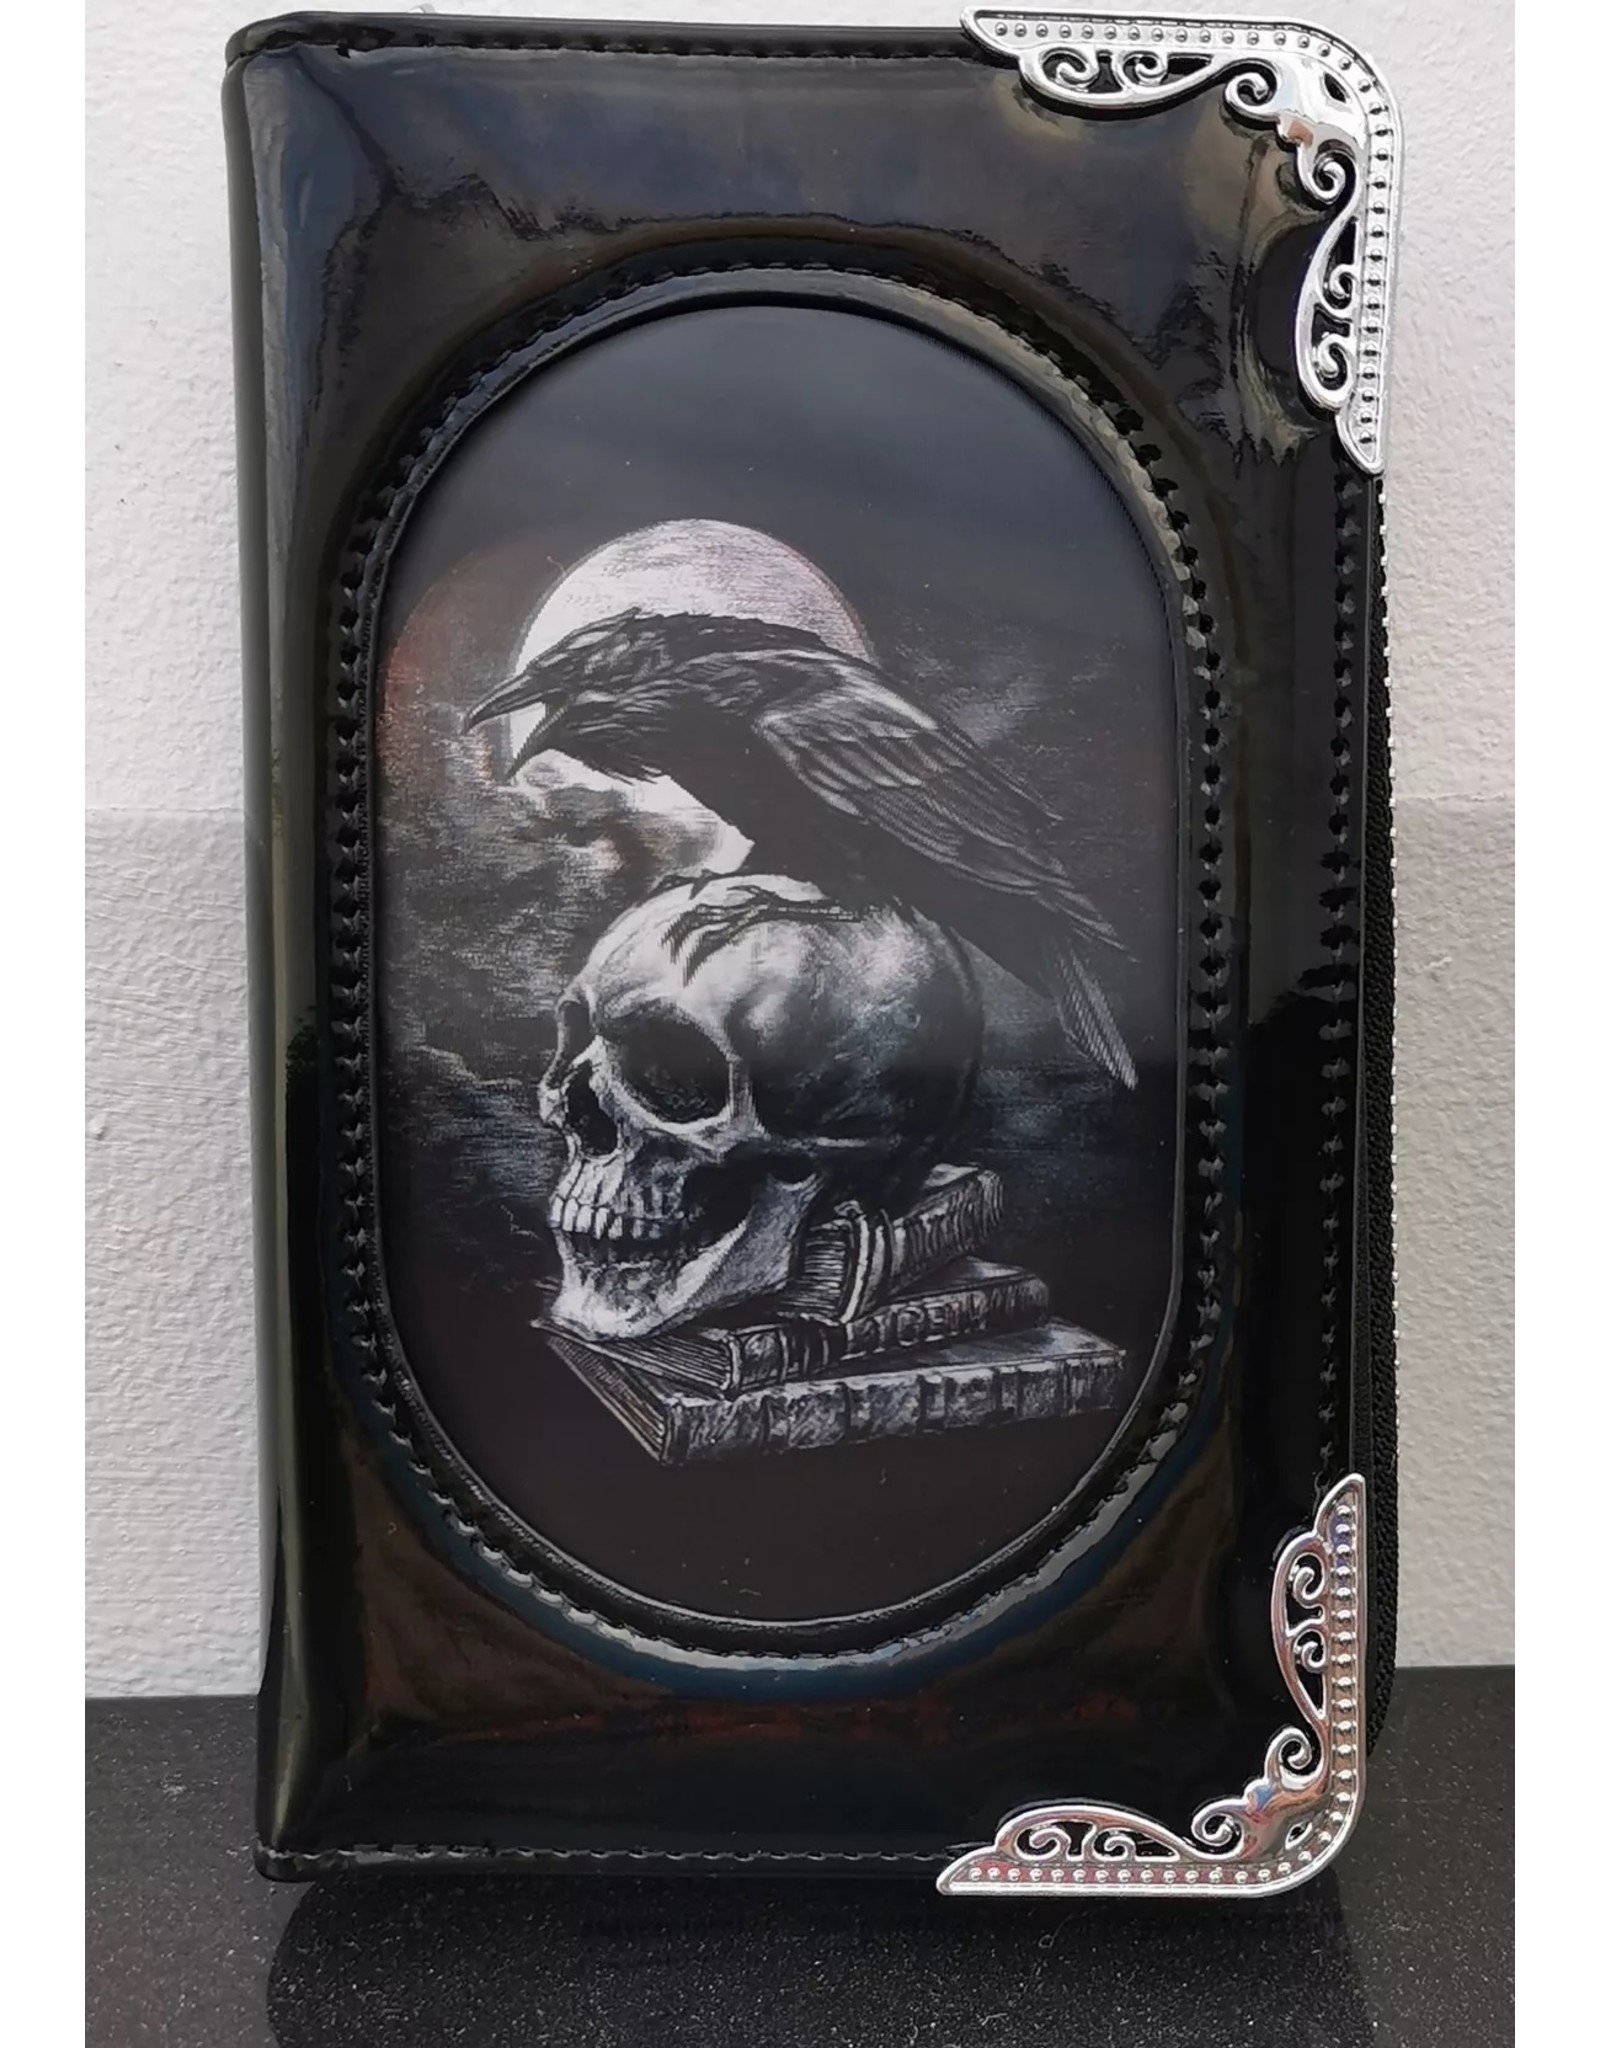 Alchemy Gothic wallets and purses - Alchemy 3D lenticular purse Poe's Raven